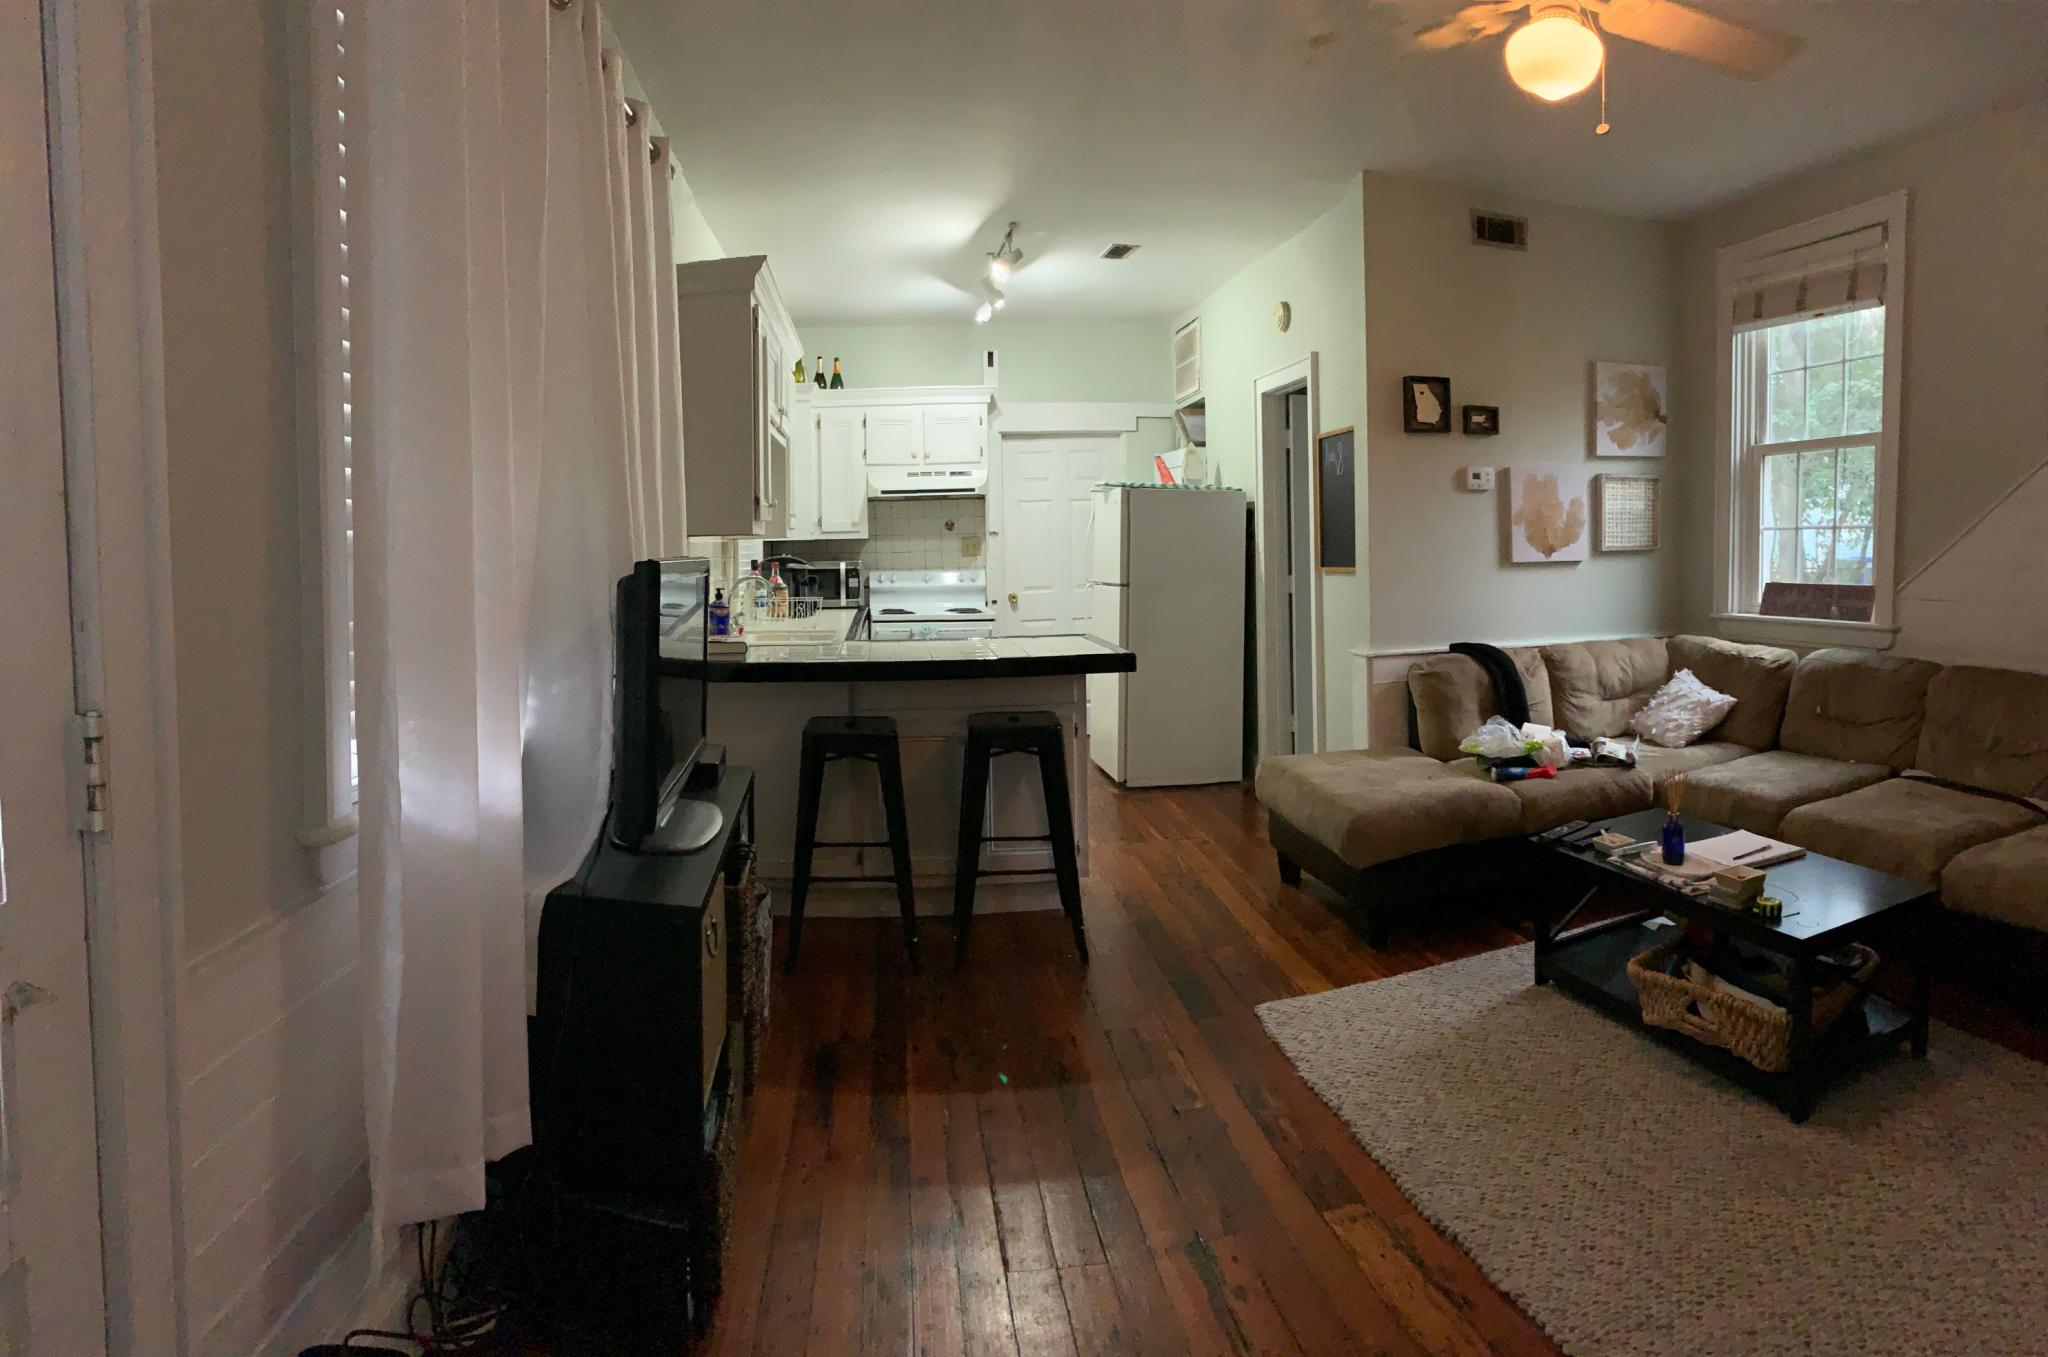 163.5 A Coming Street living area